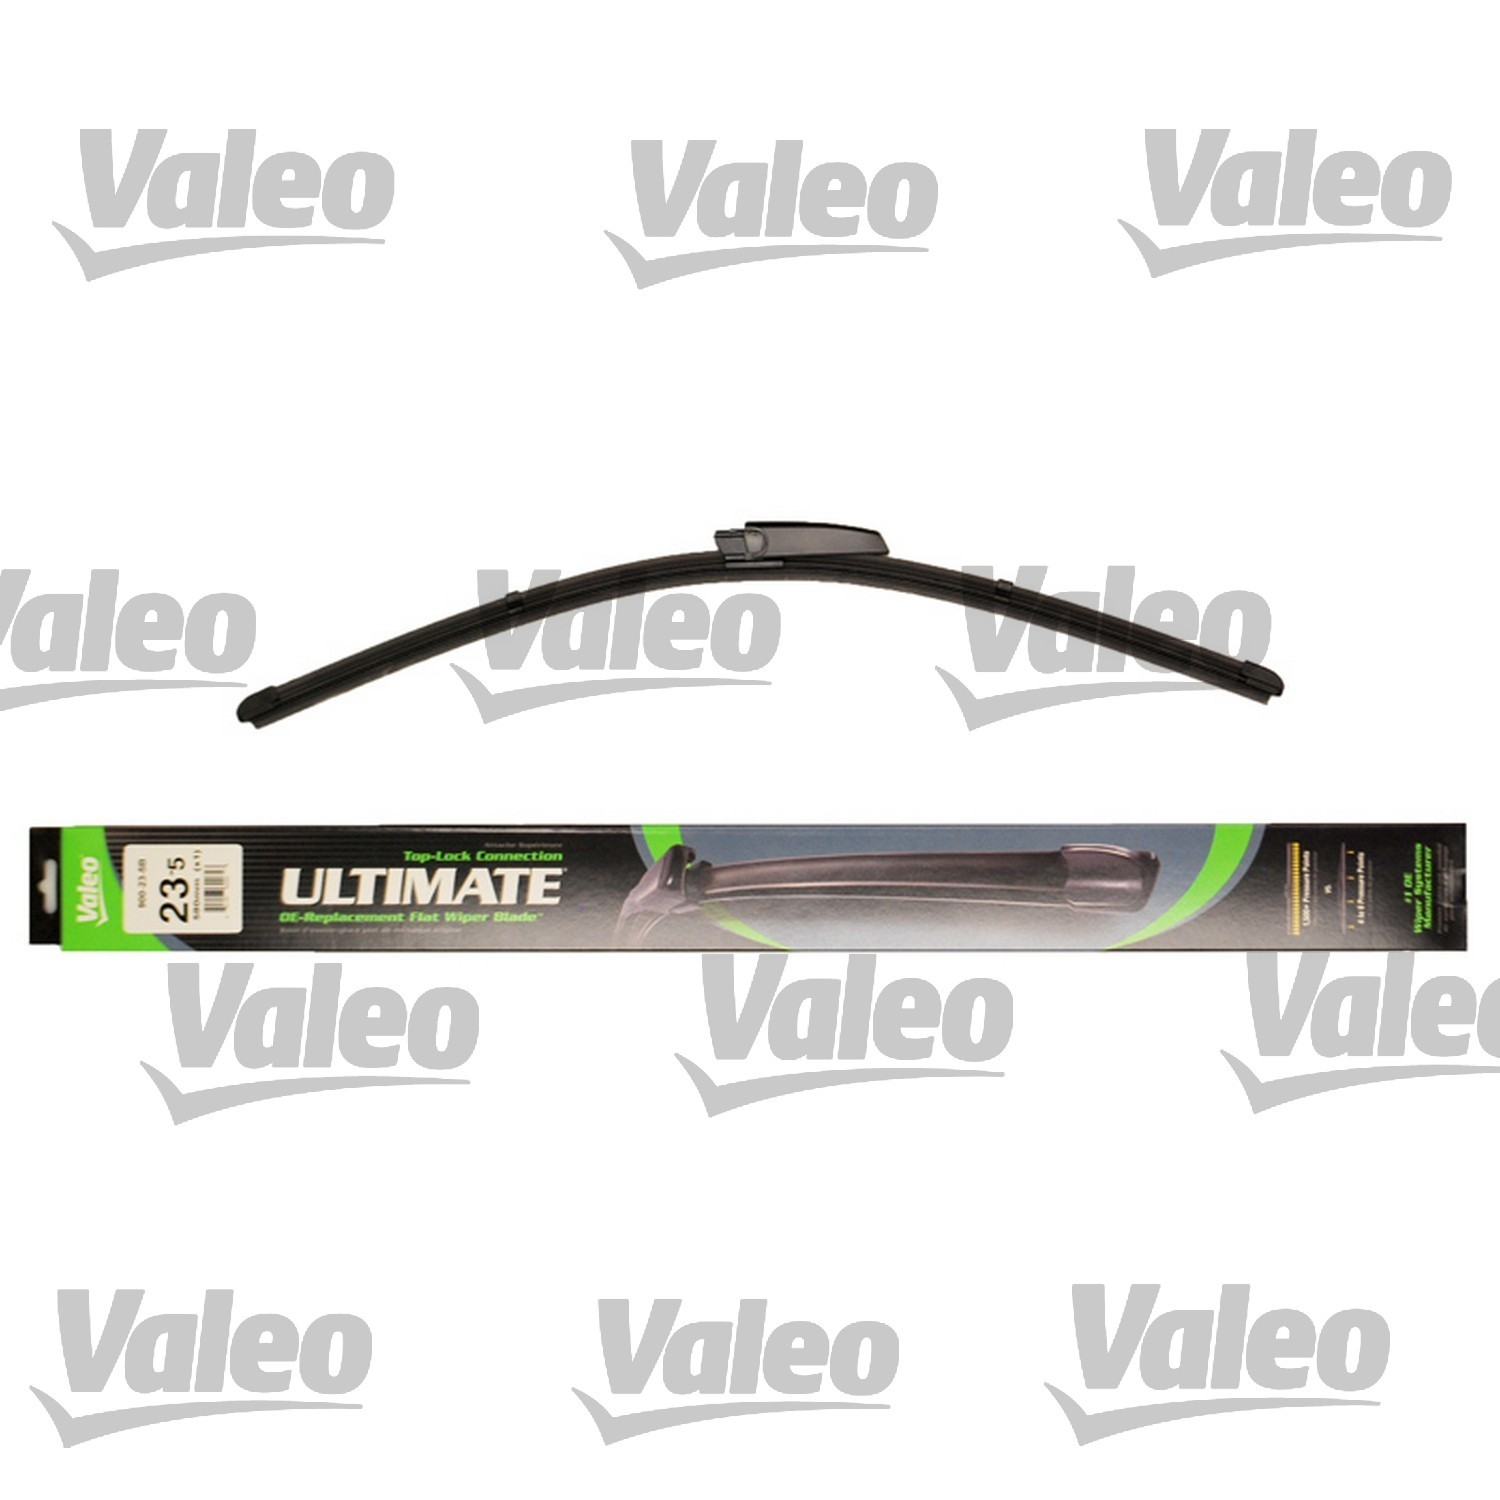 VALEO - Ultimate Wiper Blade - VEO 900-23-5B